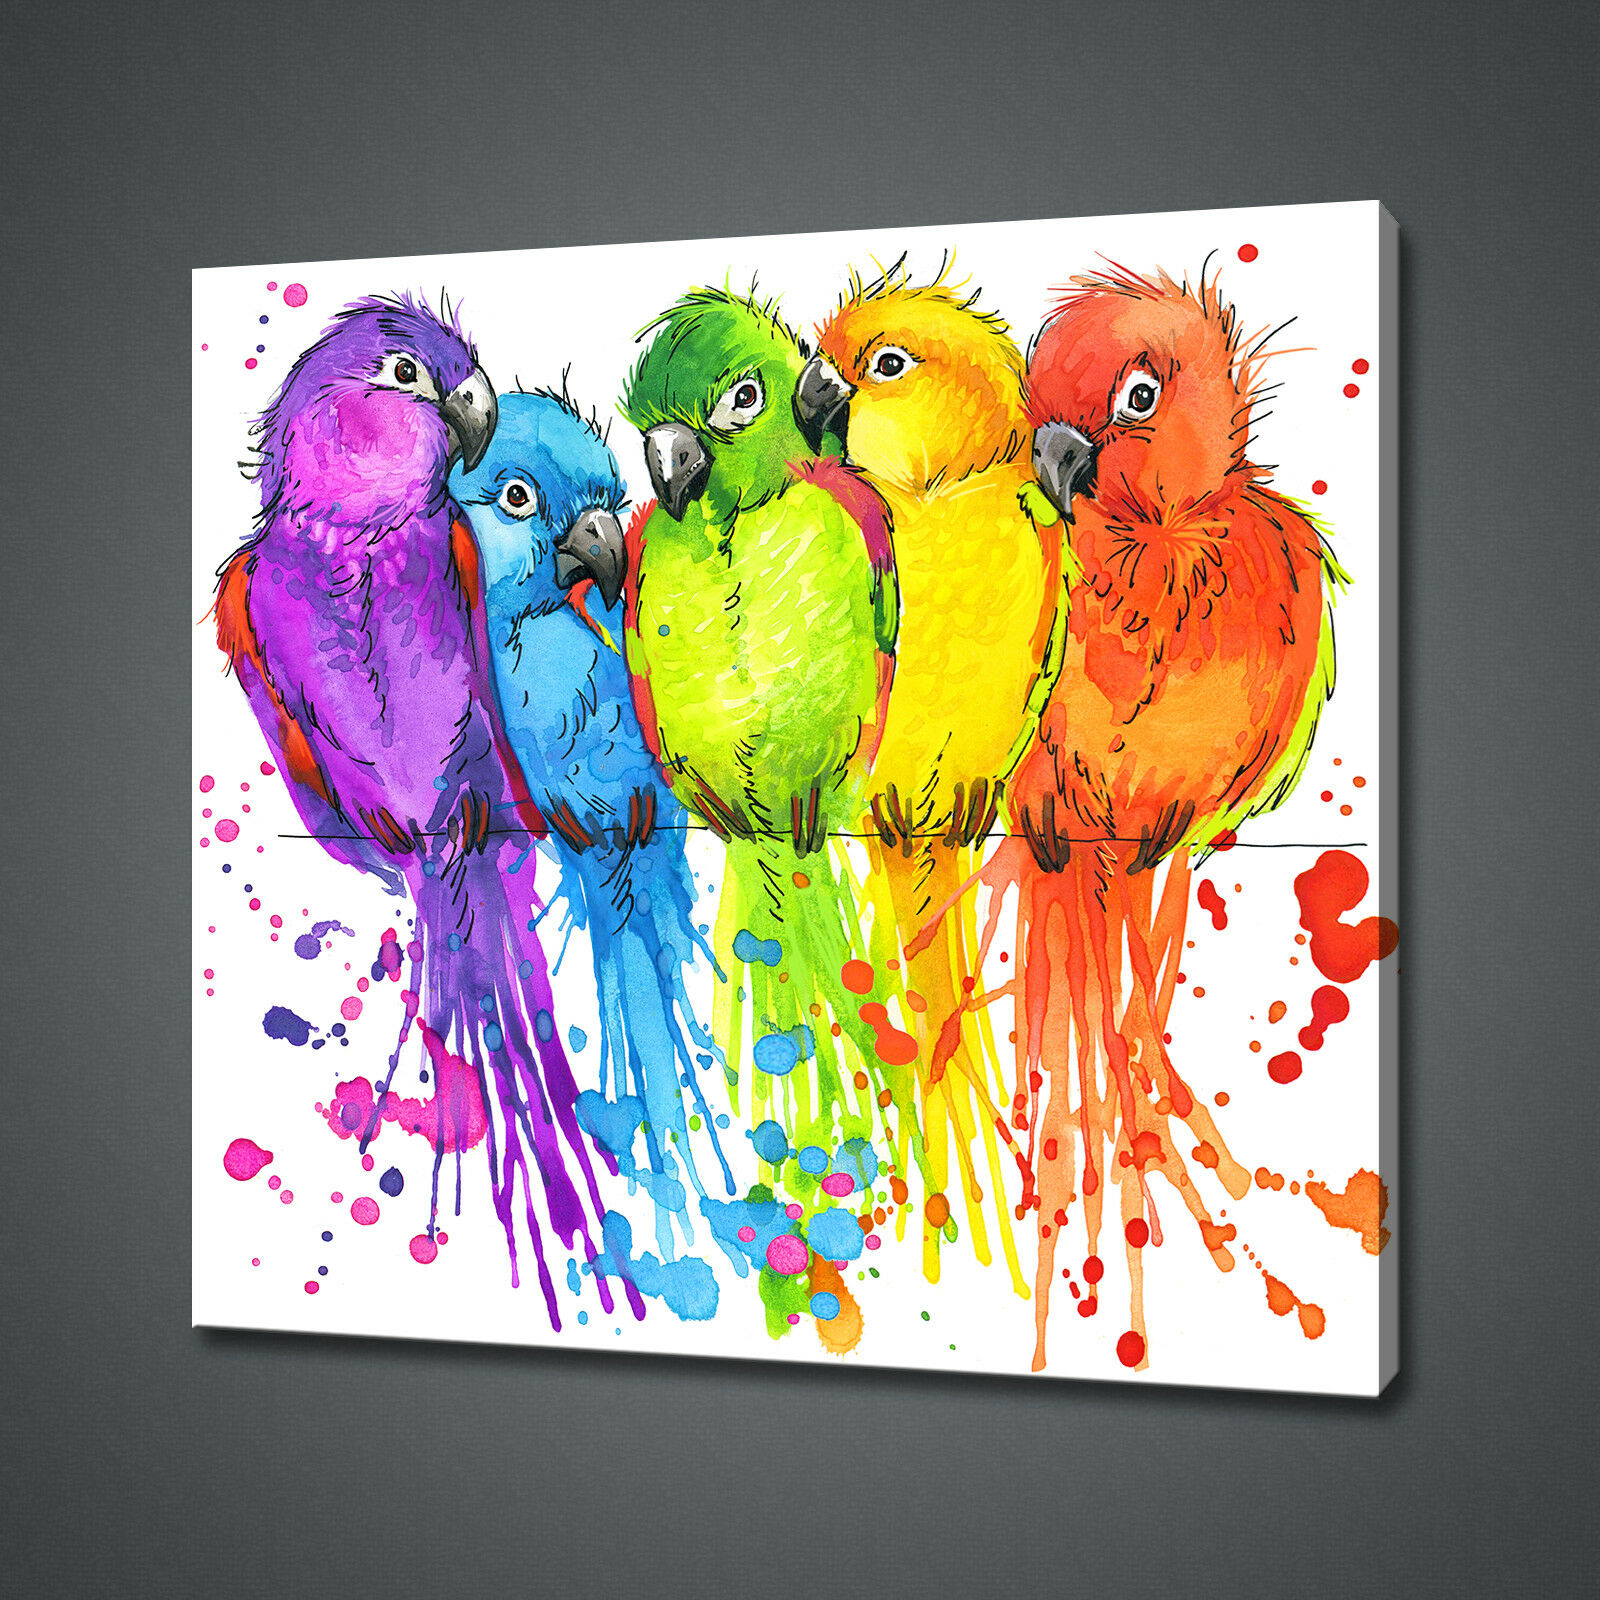 COLOURFUL PARROTS WATERCOLOUR PAINT STYLE CANVAS PRINT WALL ART PICTURE PHOTO